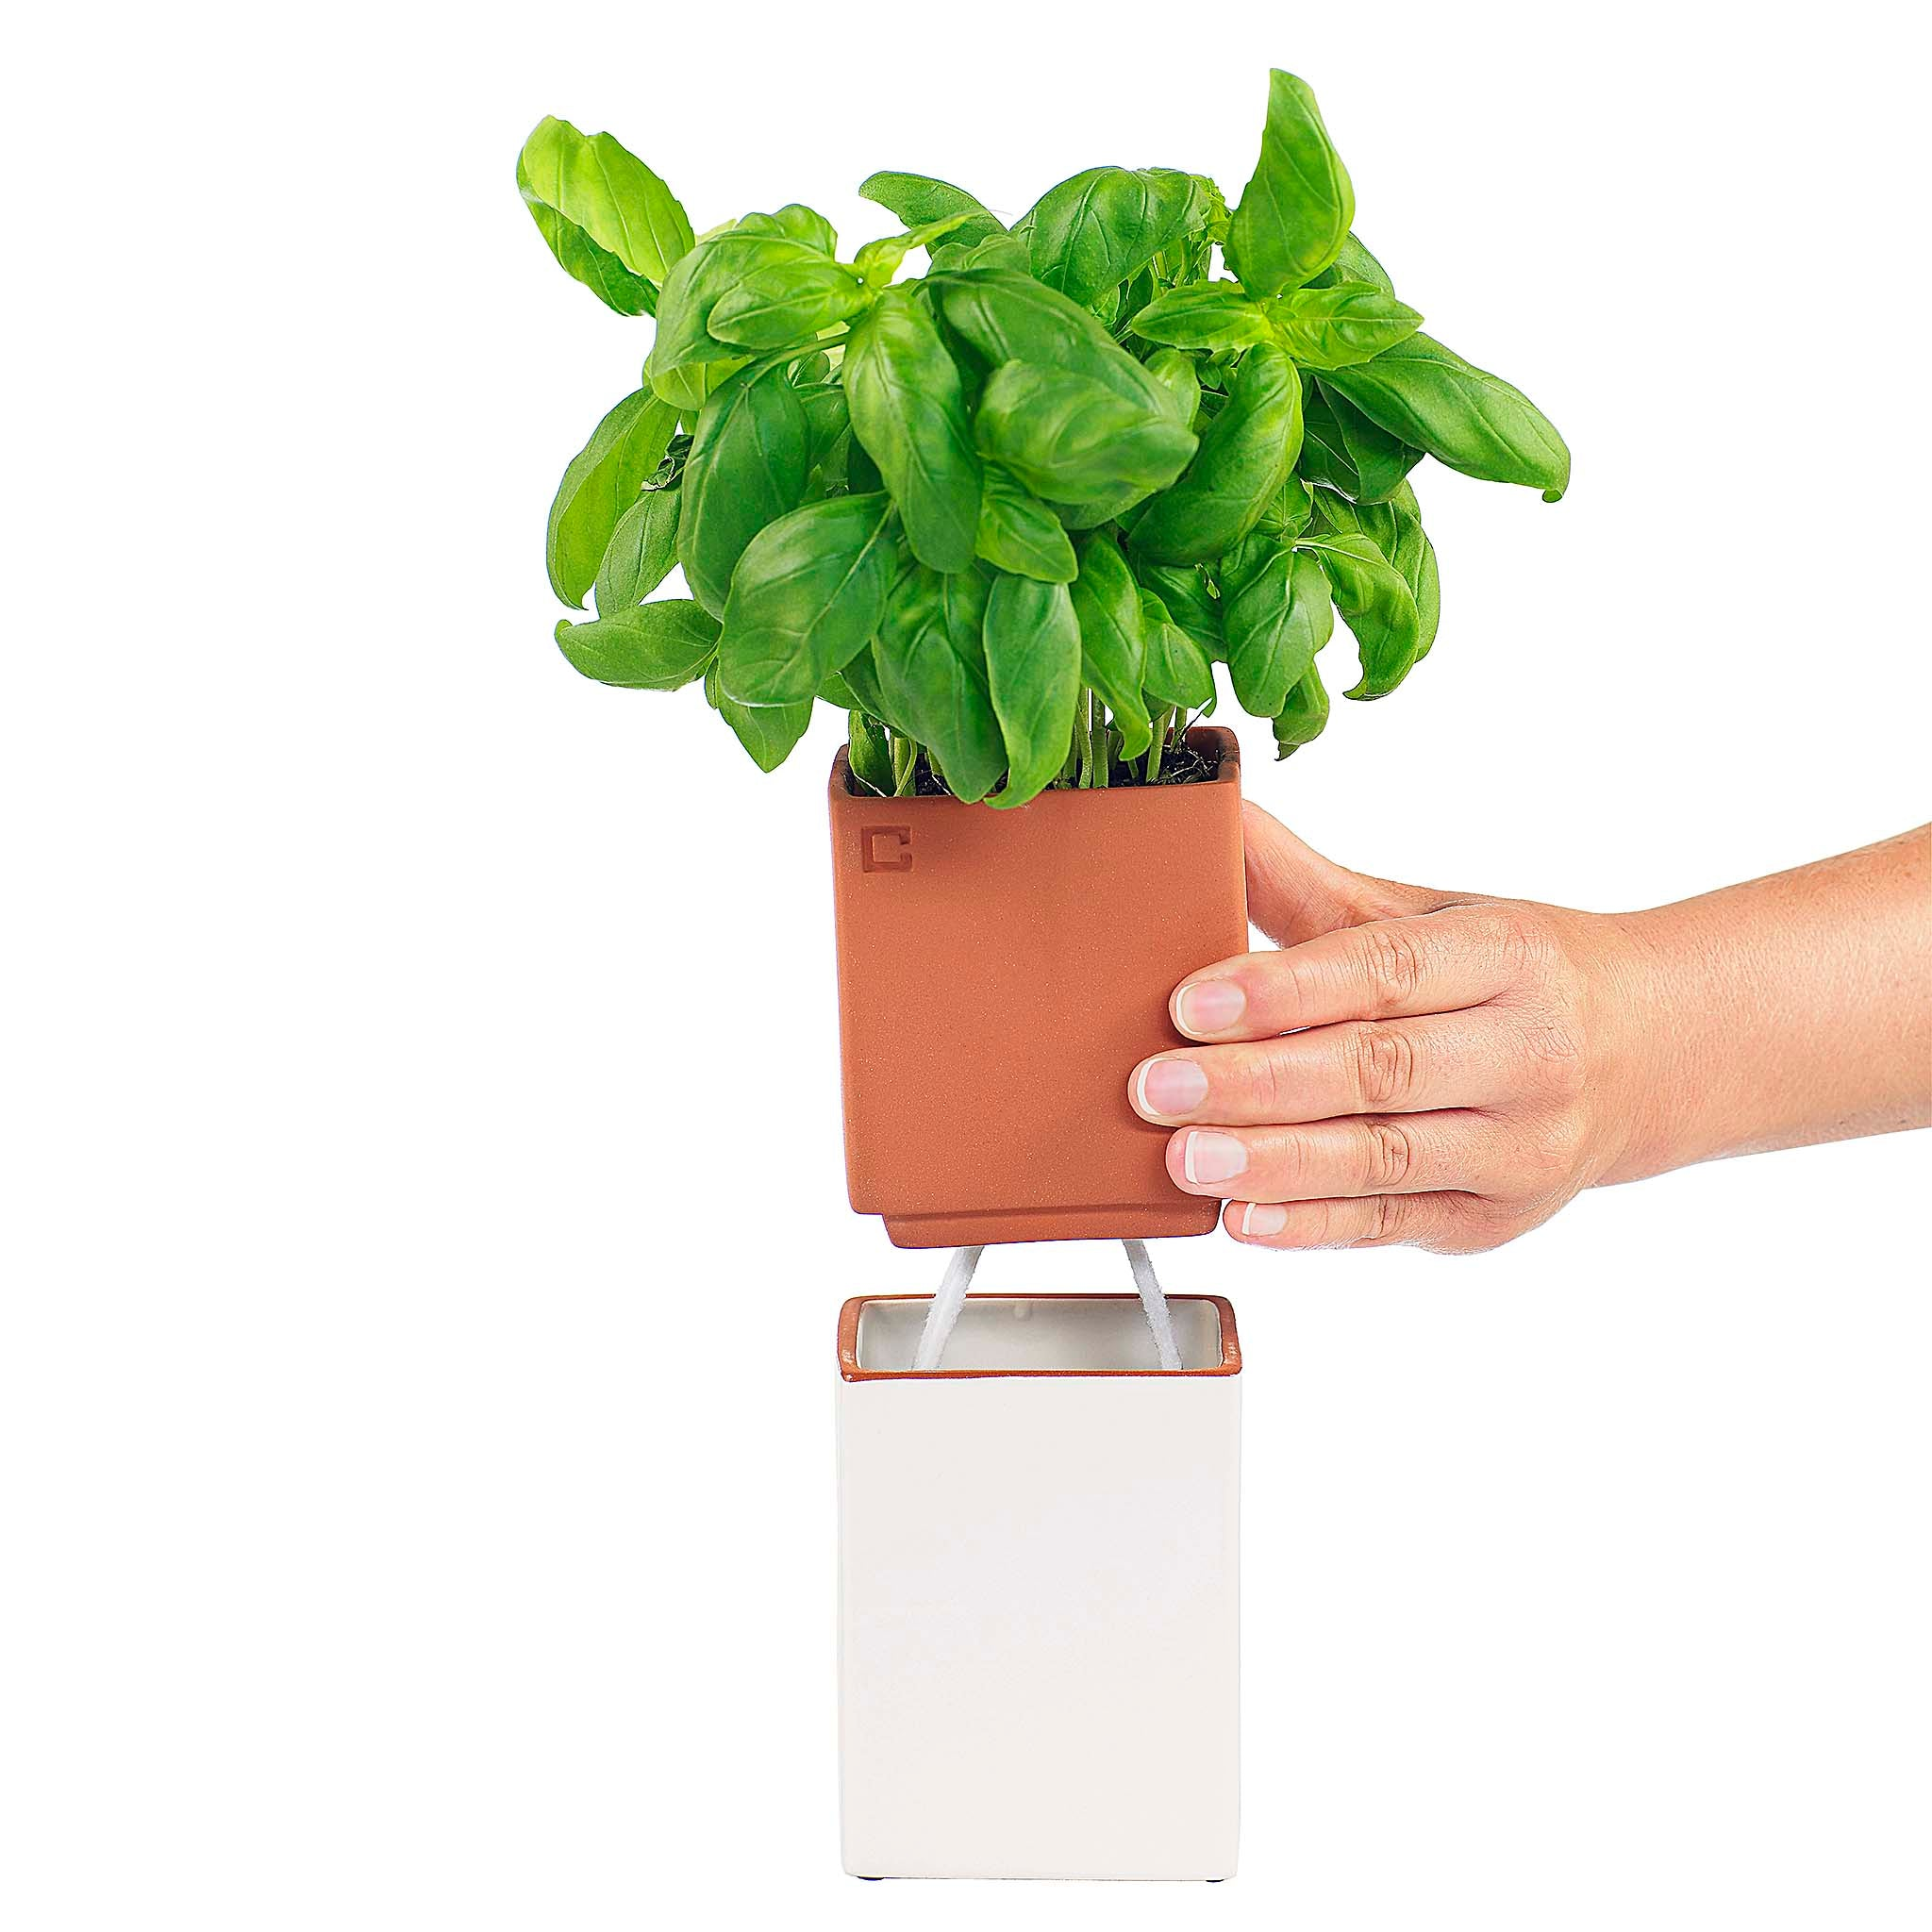 Thanks to the Evergreen, you'll find it easier to keep aromatic greens at hand when standing in front of the stovetop.